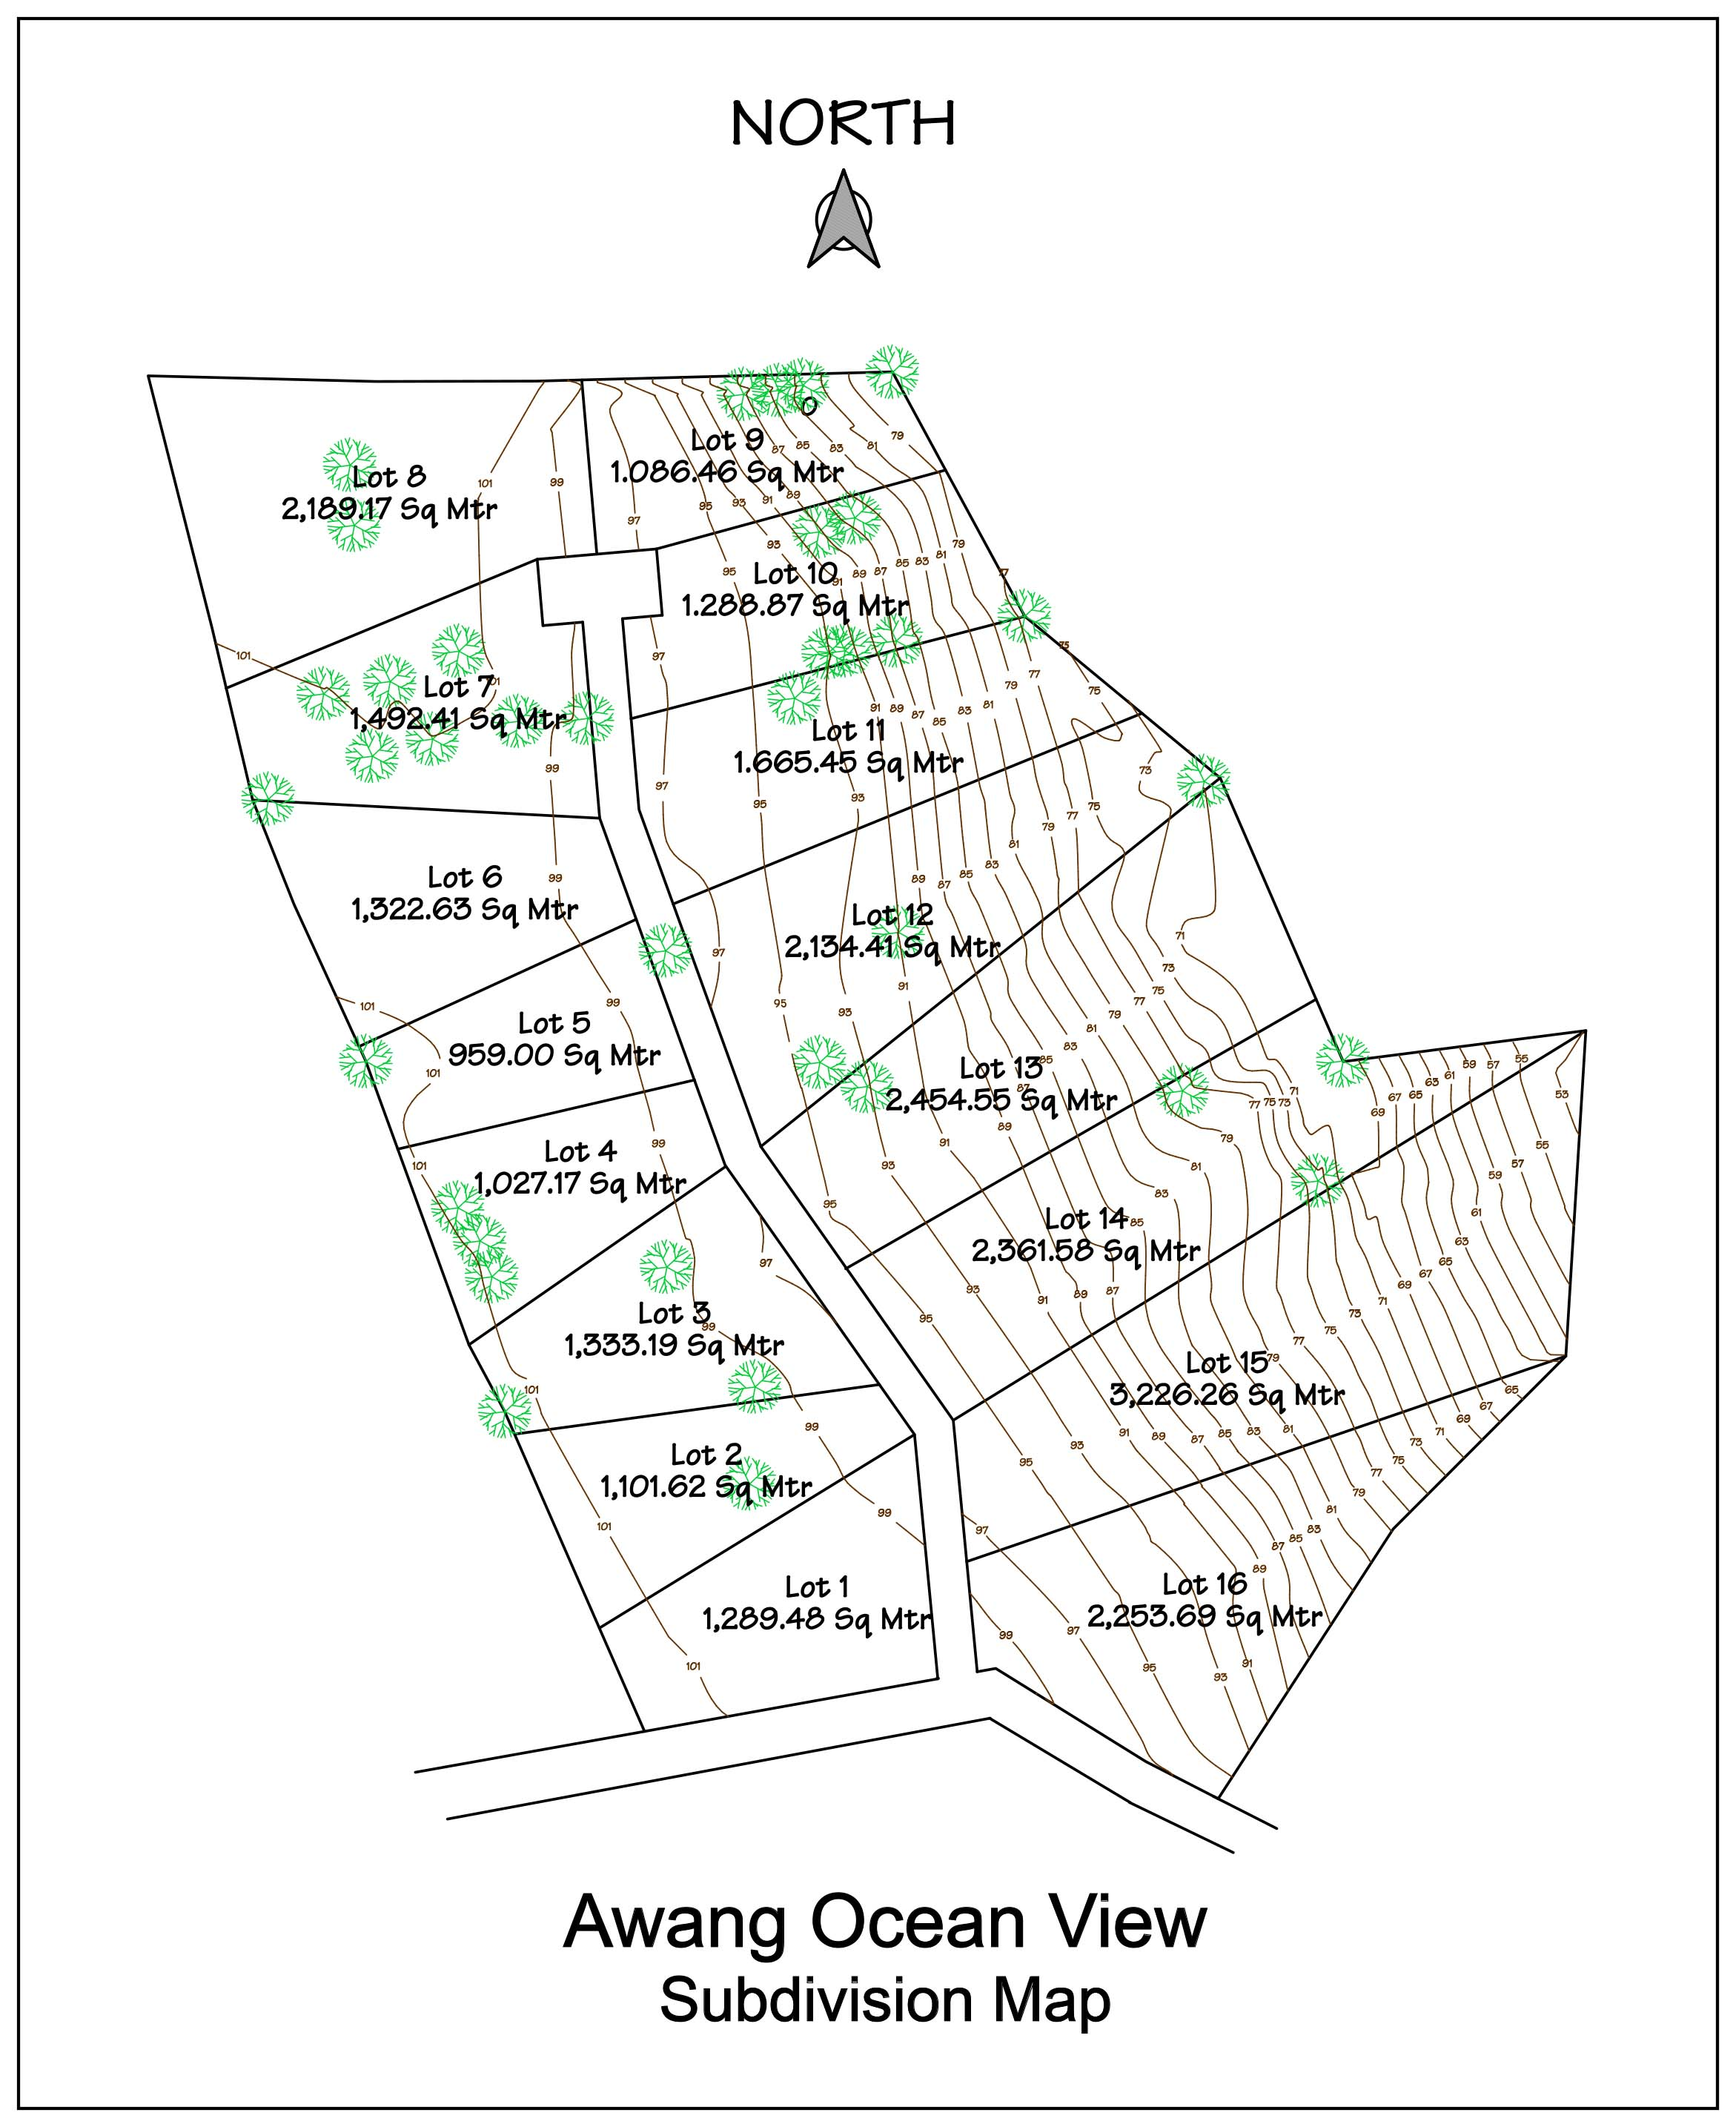 Awang Ocean View Subdivision Map